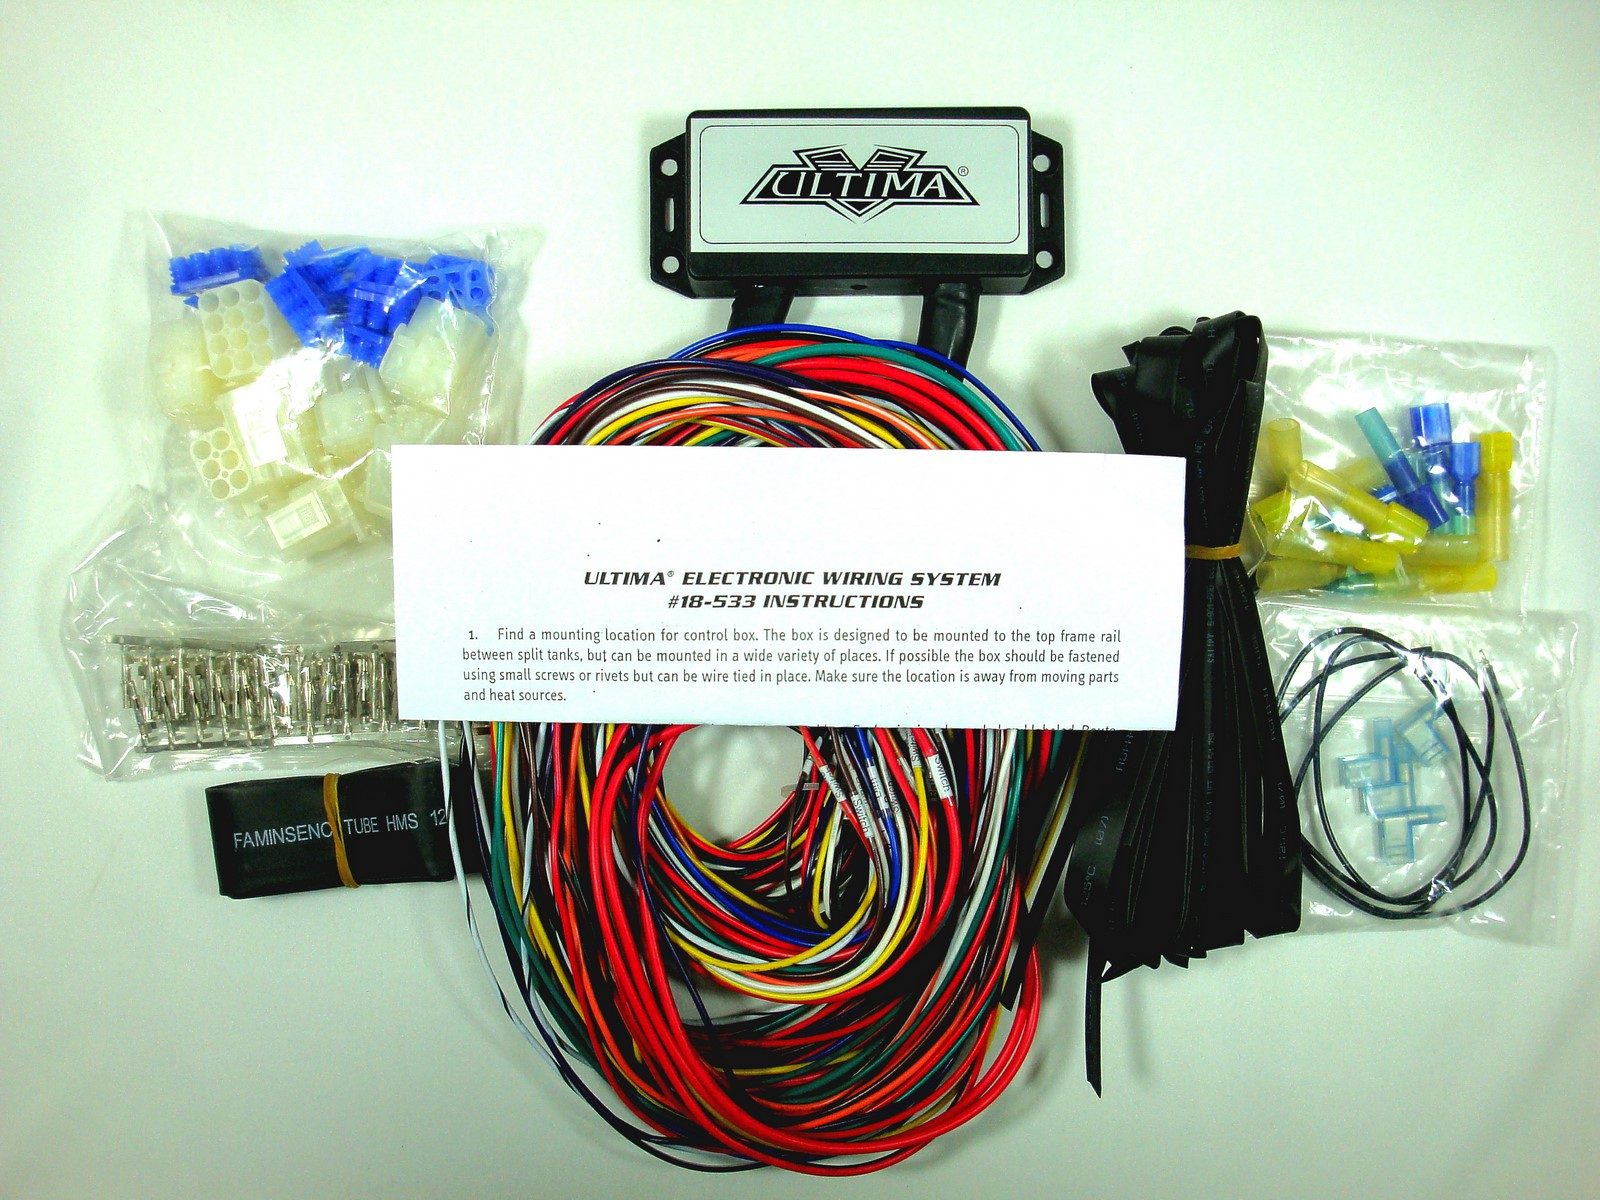 Ultima Plus Electronic Wiring Harness System For Harley And Custom Motorcycle Engine Diagram Instructions Are Included